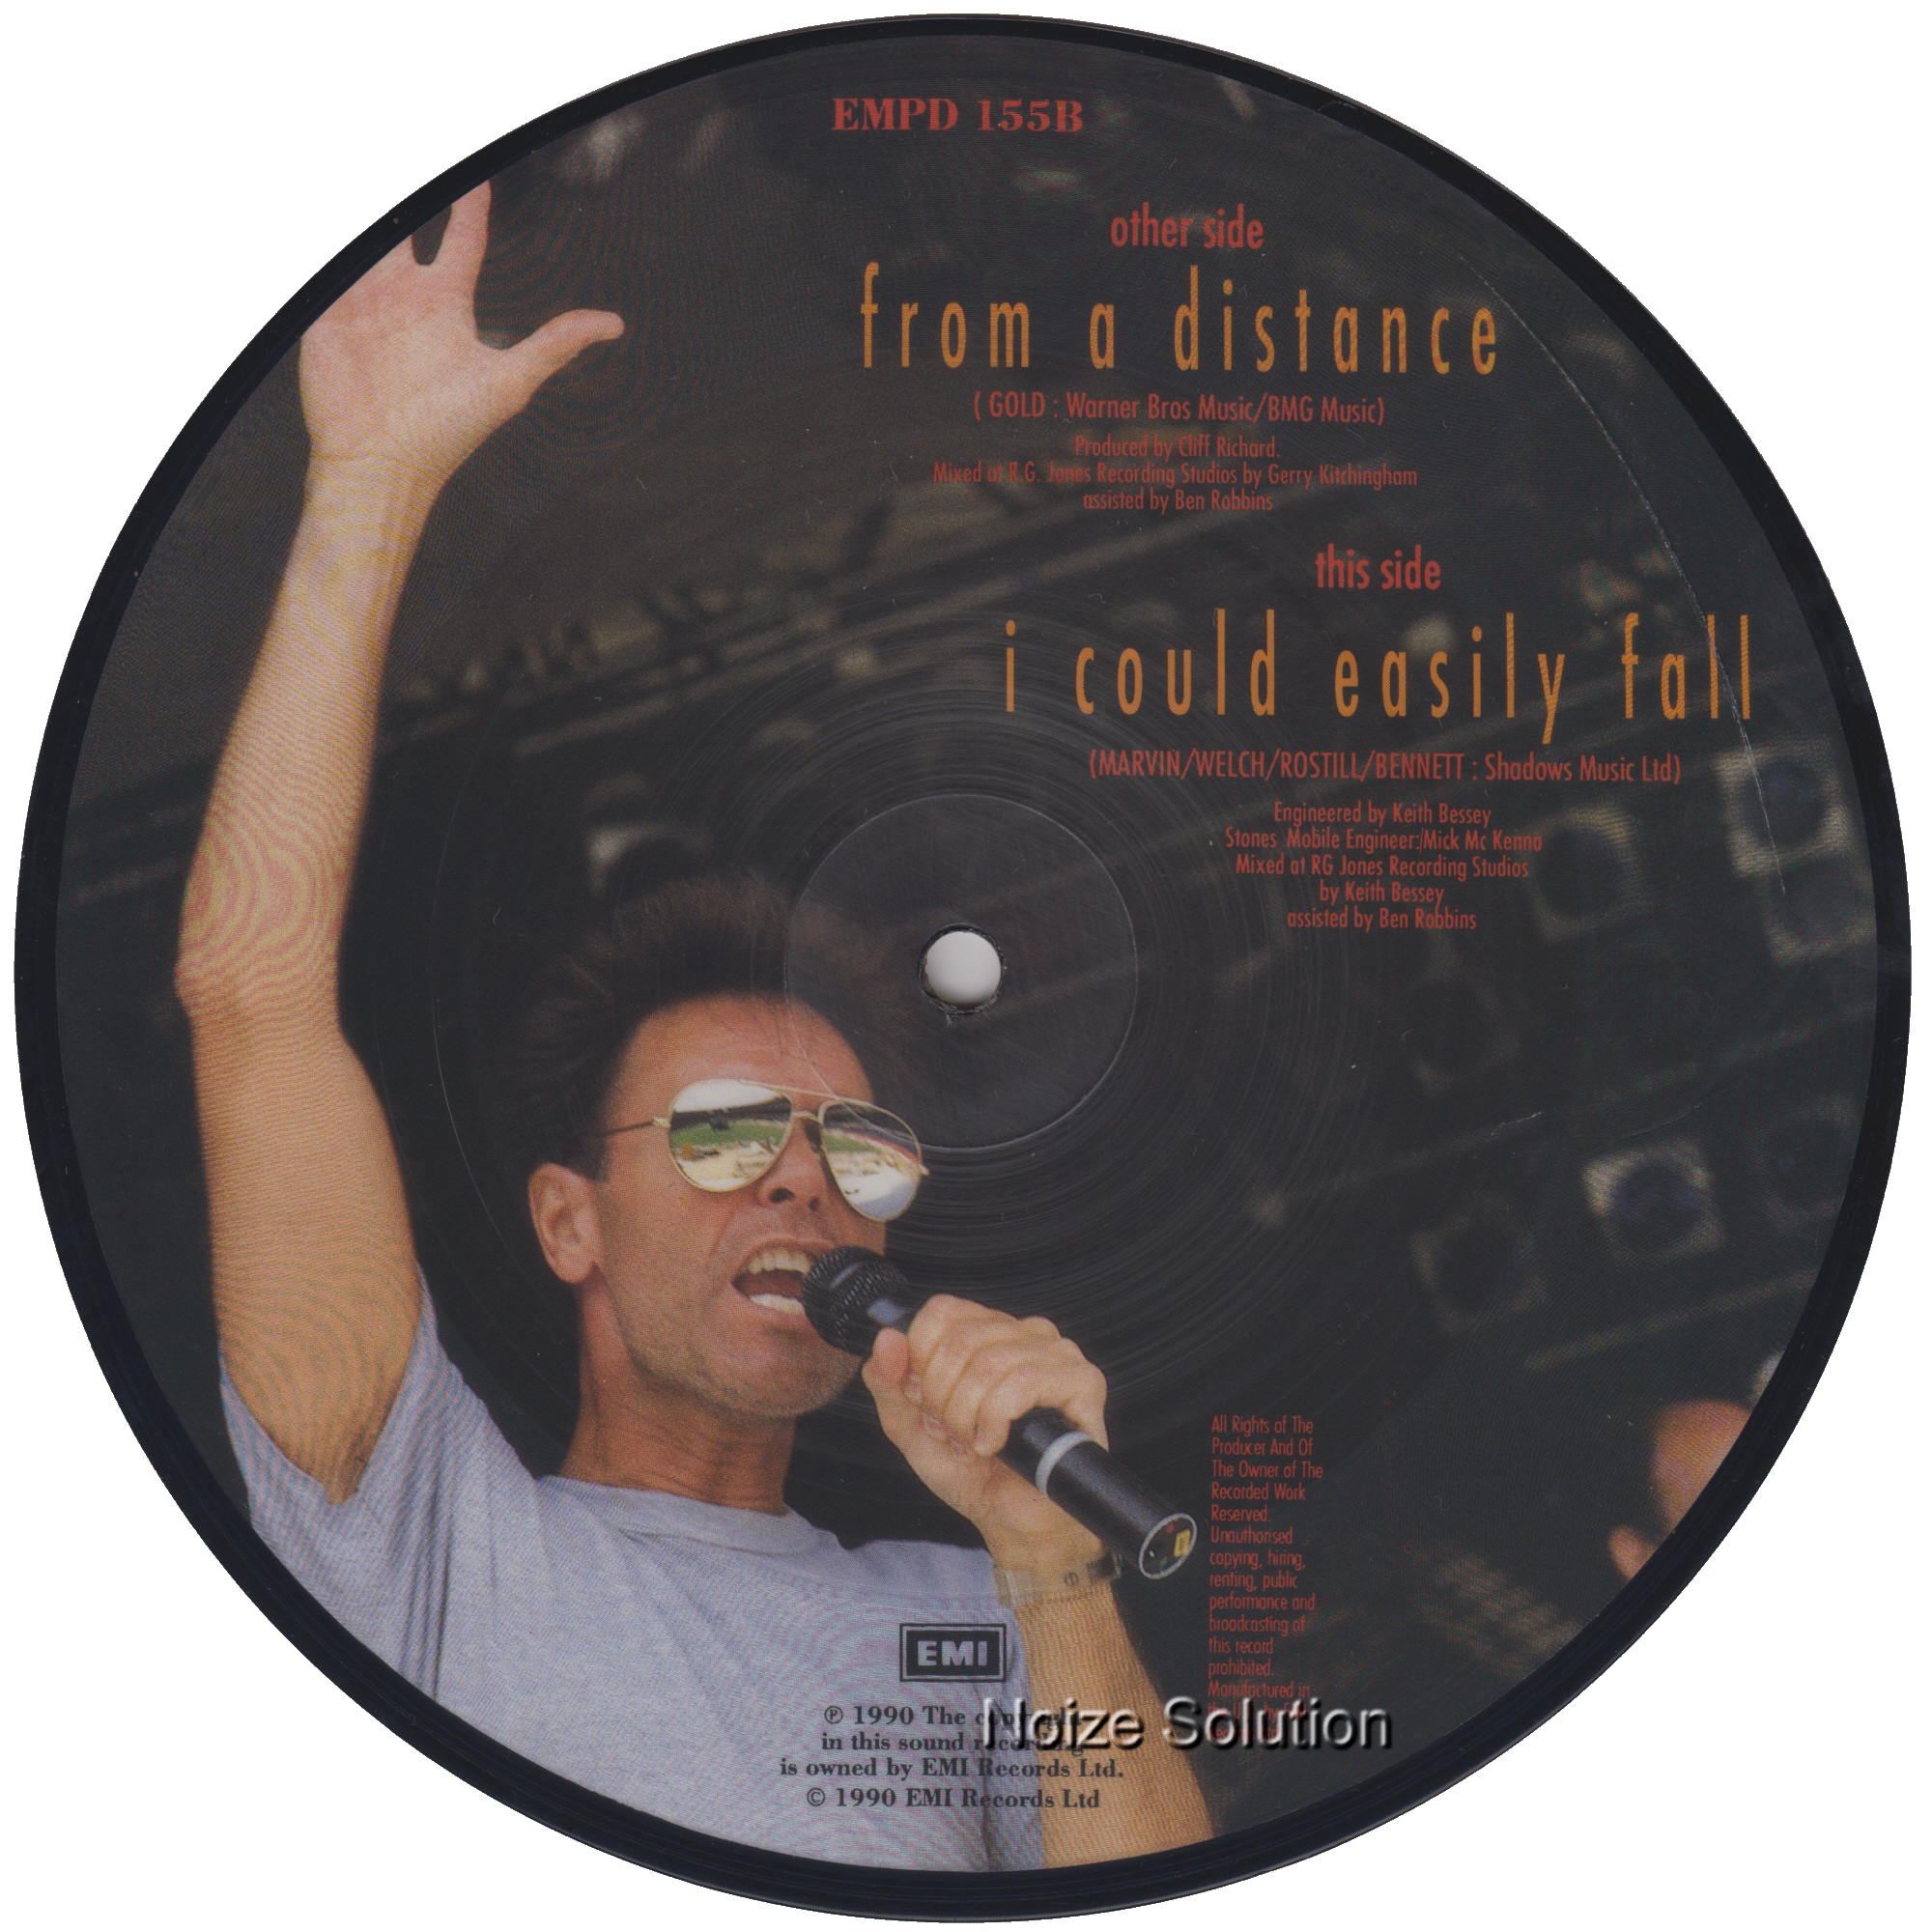 Cliff Richard - From A Distance 7 inch vinyl Picture Disc Record Side 2 CliffRichard.